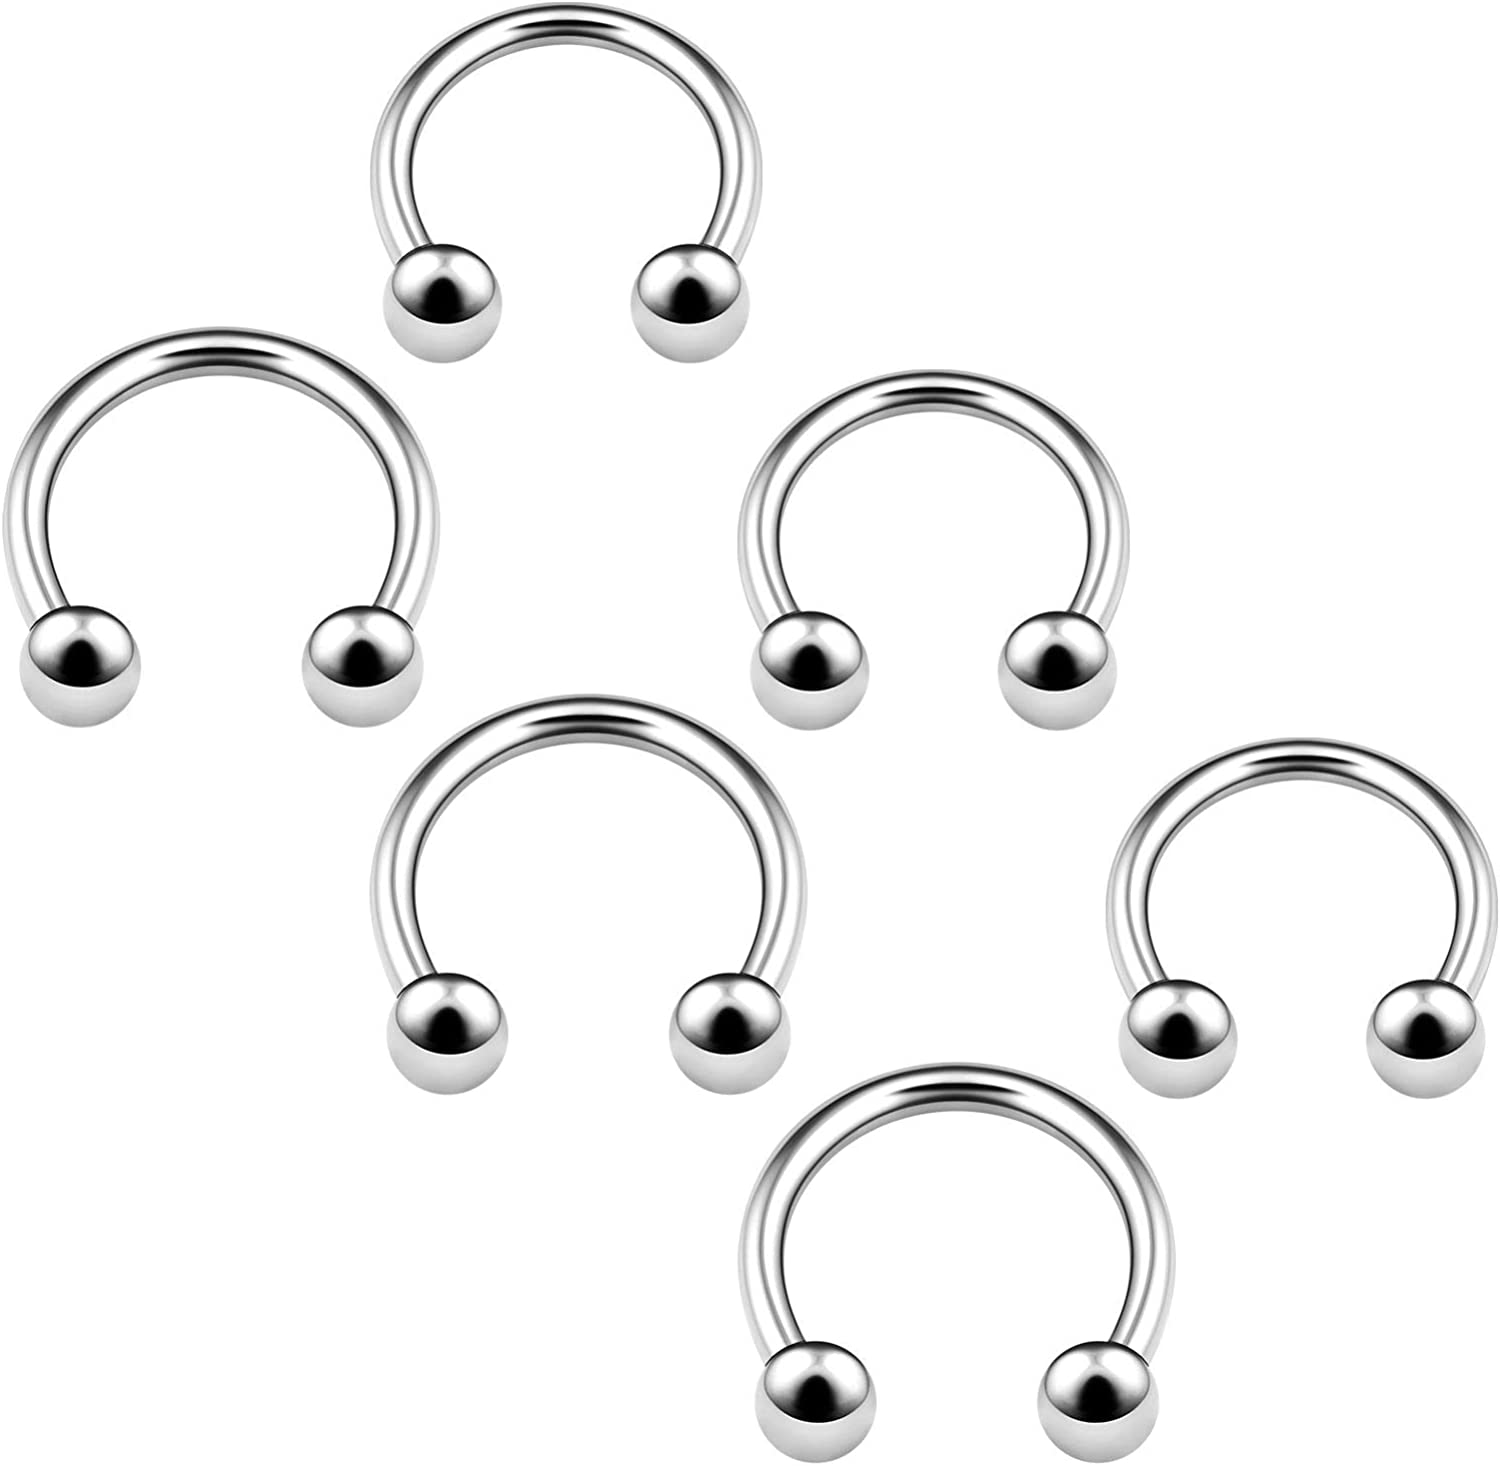 6PCS Horseshoe Earrings 3mm Ball Cartilage Septum Nose Lip Earrings Tragus Piercing Jewelry More Colors and Size